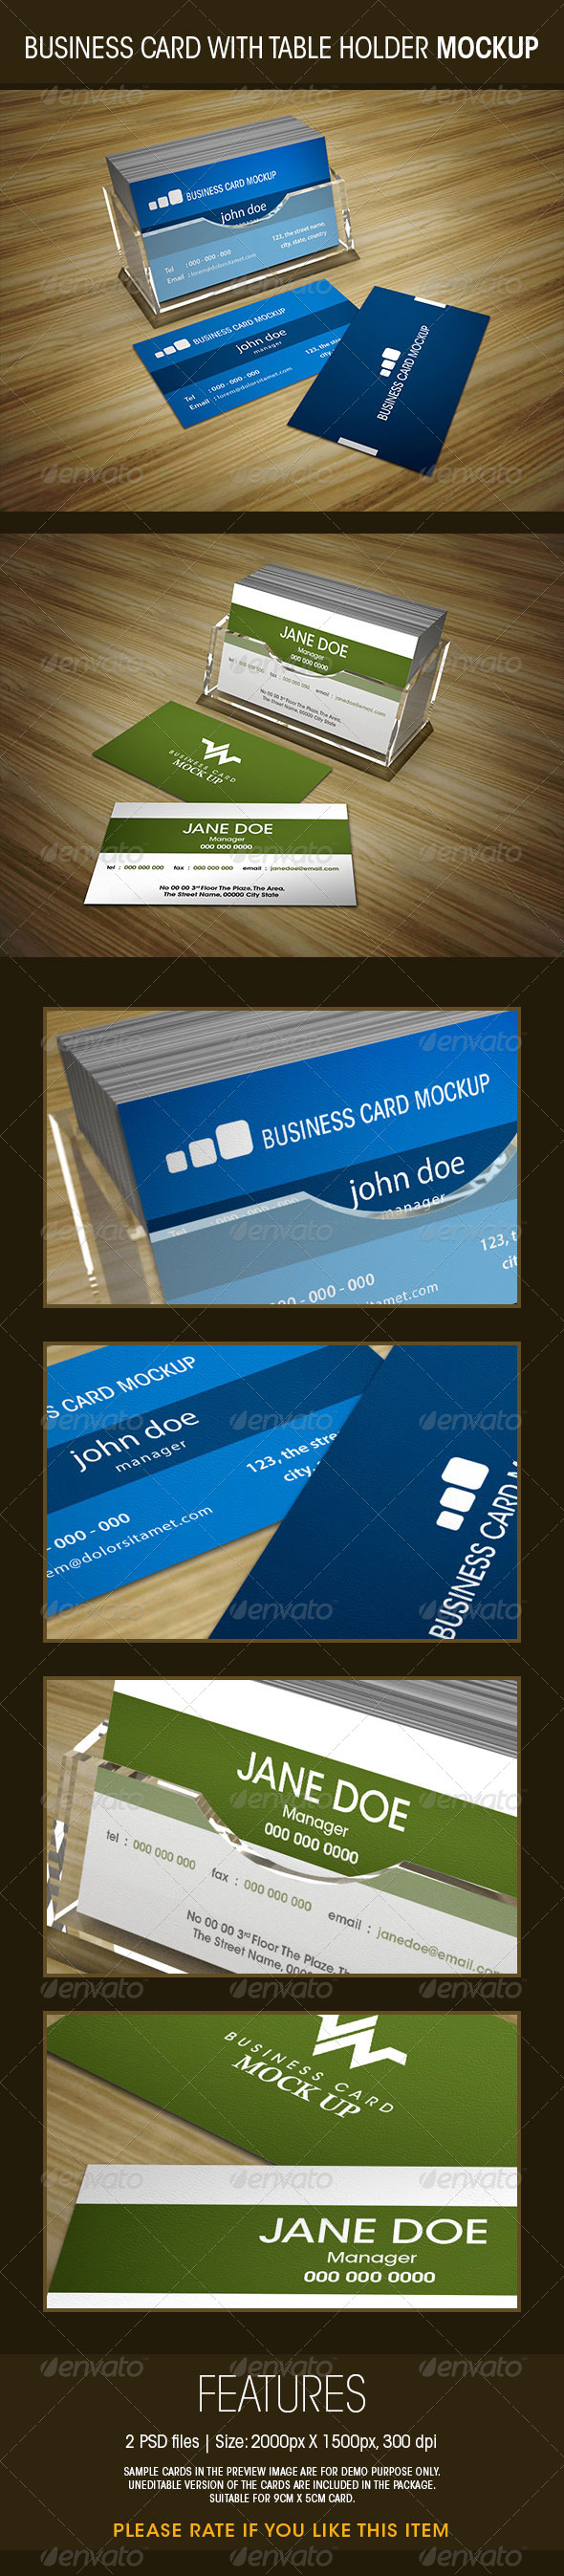 Business Card with Table Holder Mockup - Business Cards Print